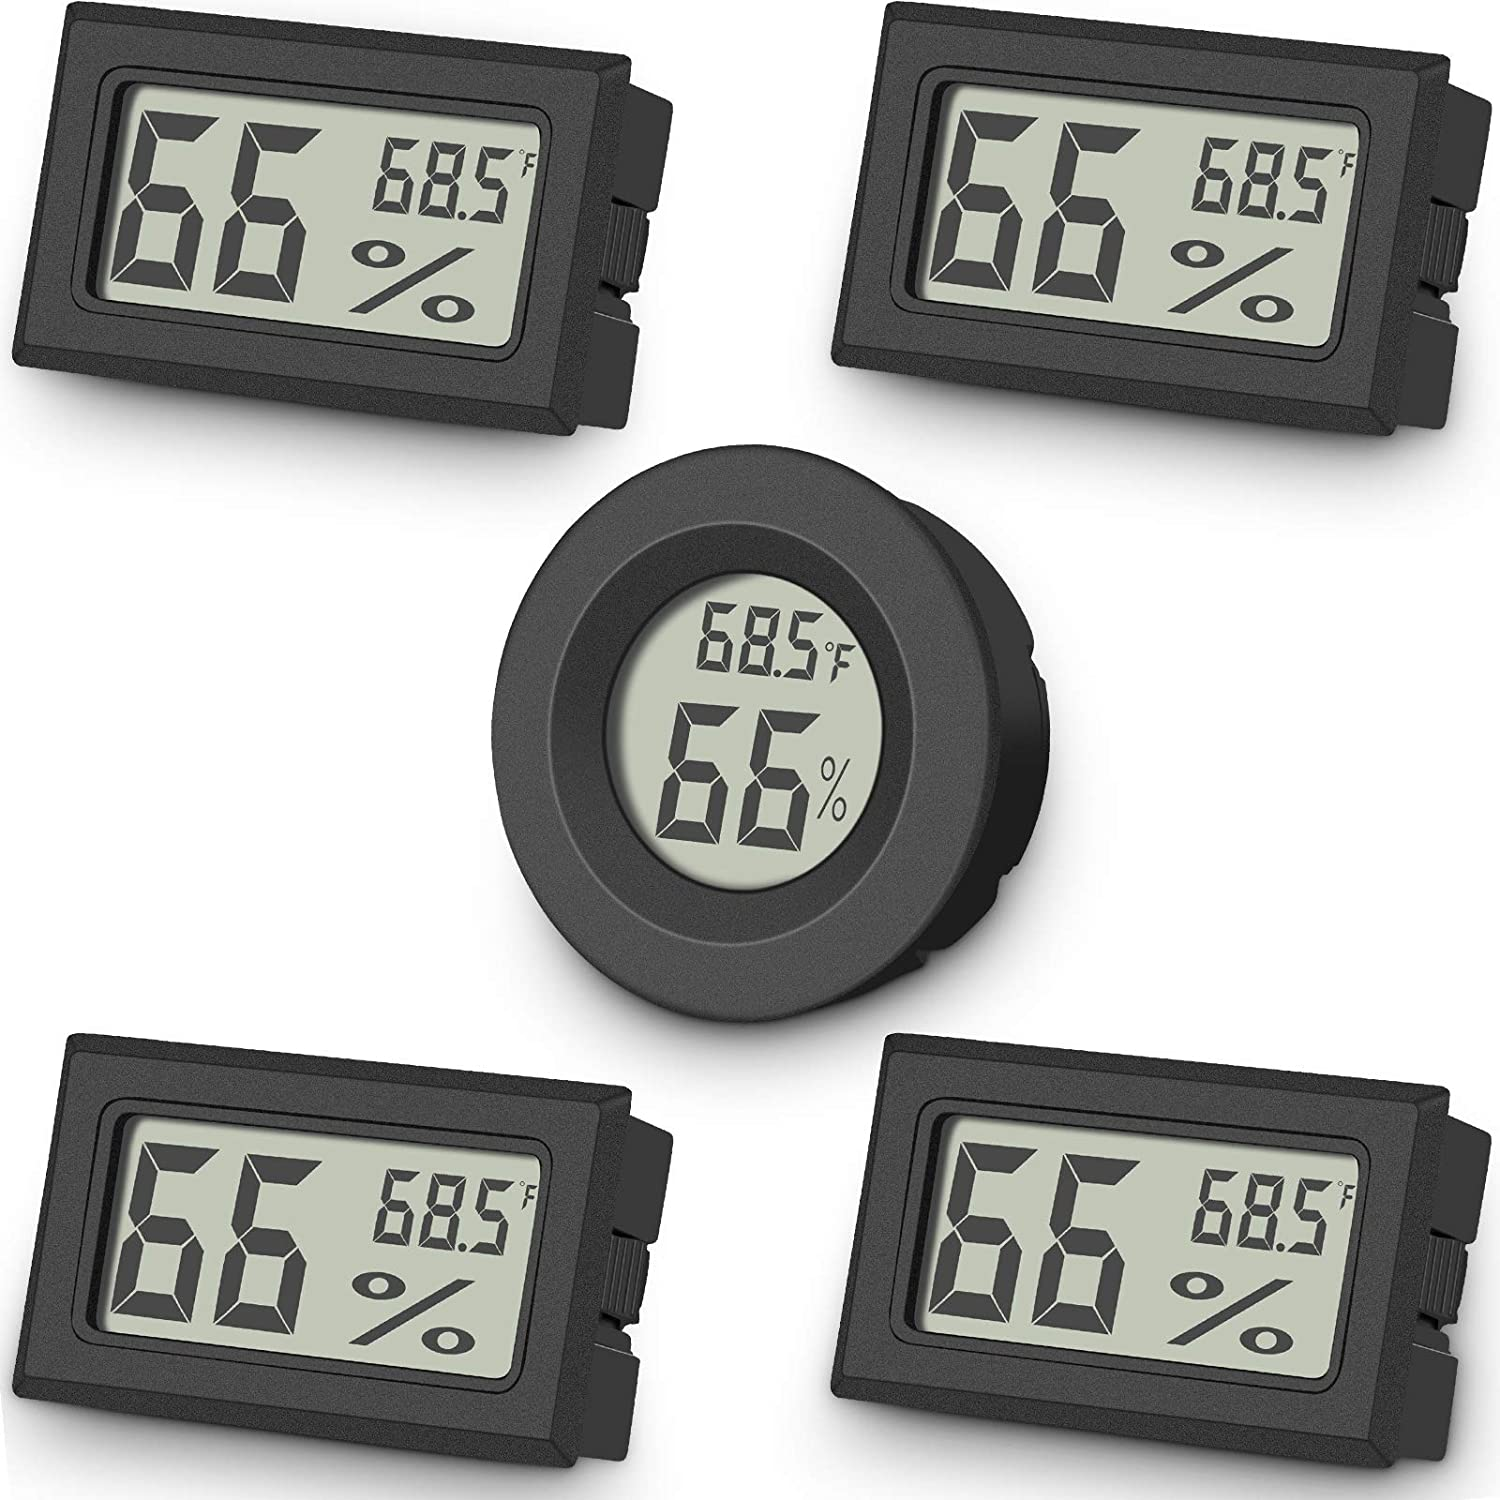 5-Pack Mini Digital Thermometer Hygrometer, Indoor Room Round Temperature Humidity Meter Gauge monitor, Large LCD Display Fahrenheit or Celsius for Greenhouse, Home, reptile, Humidors, office, Garden